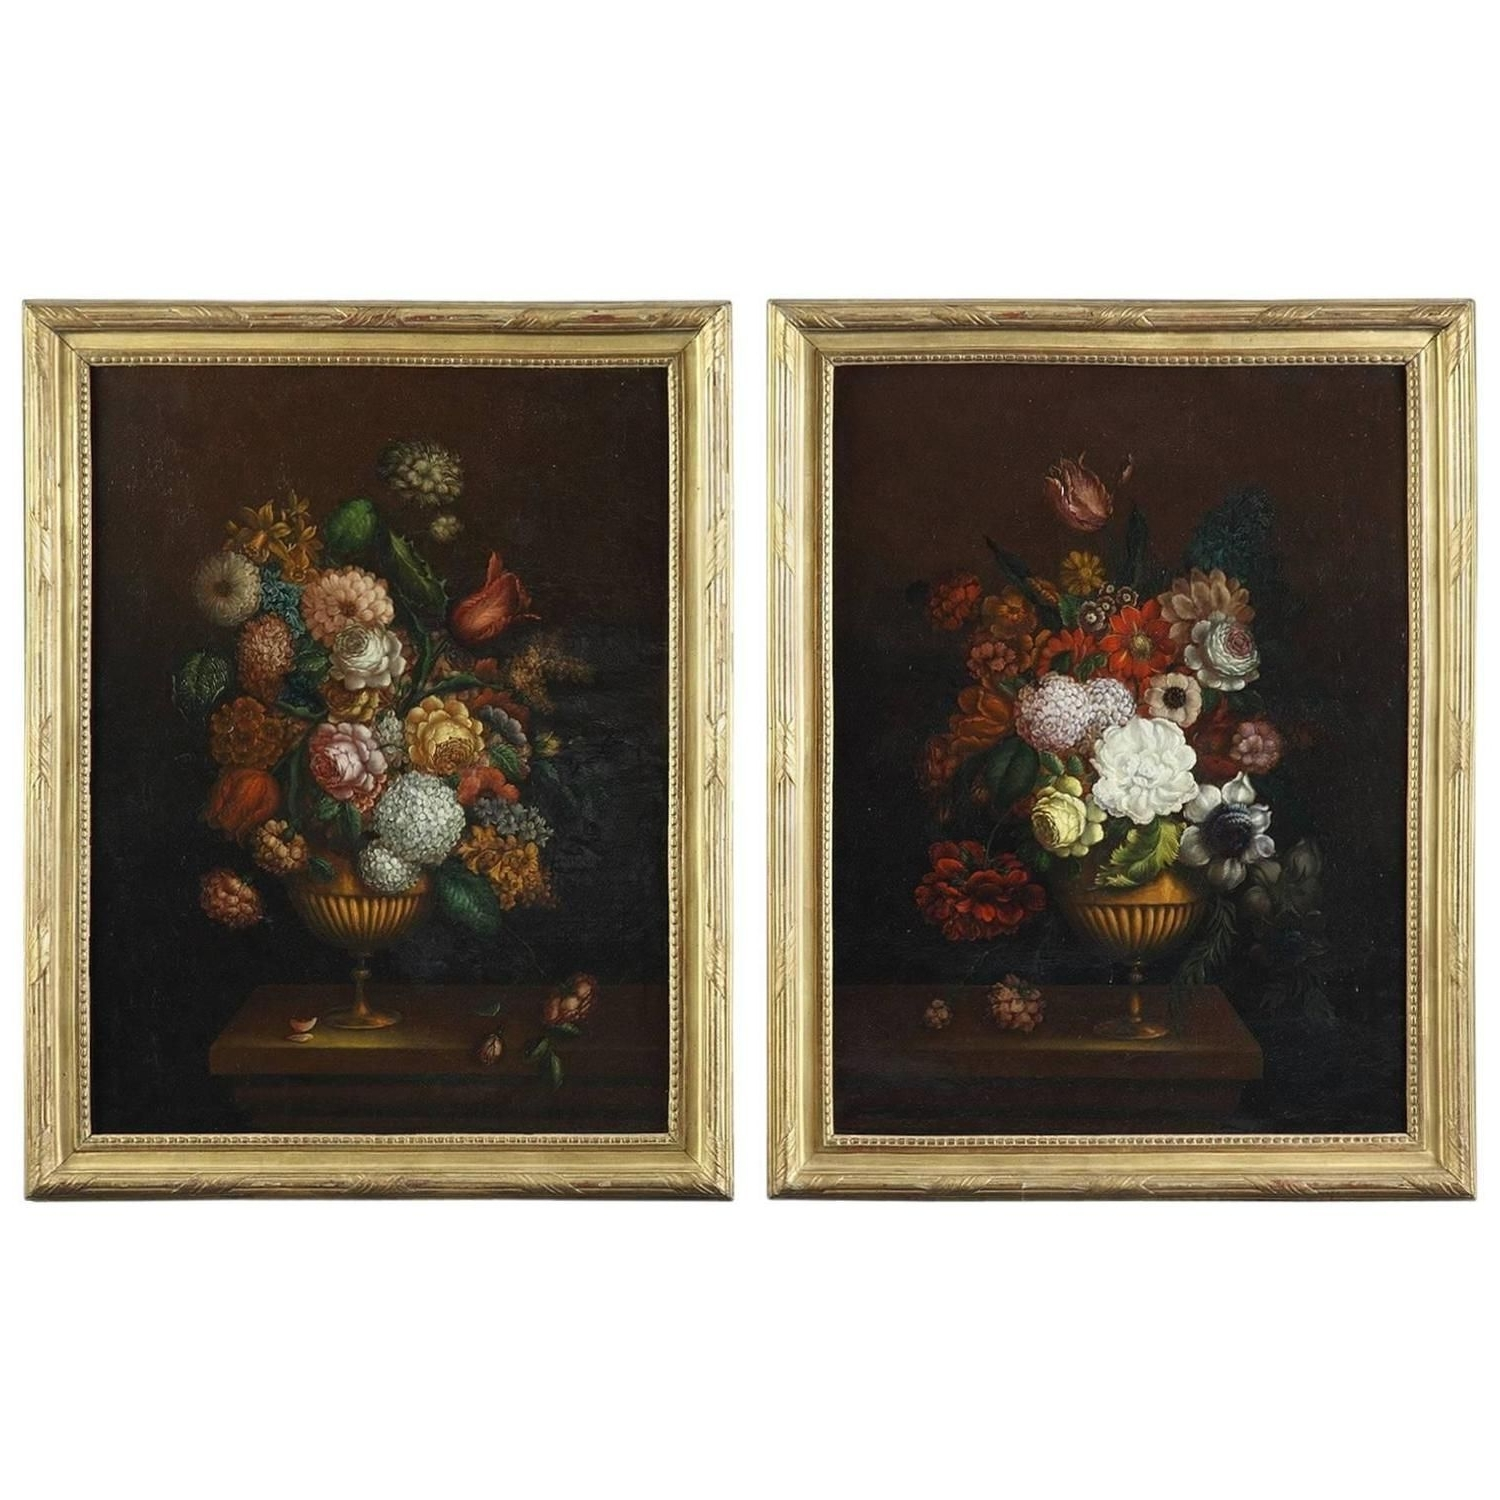 Preferred Canvas Wall Art Pairs Inside Pair Of Oil On Canvas Paintings, Flower Bouquets From 19Th Century (View 10 of 15)